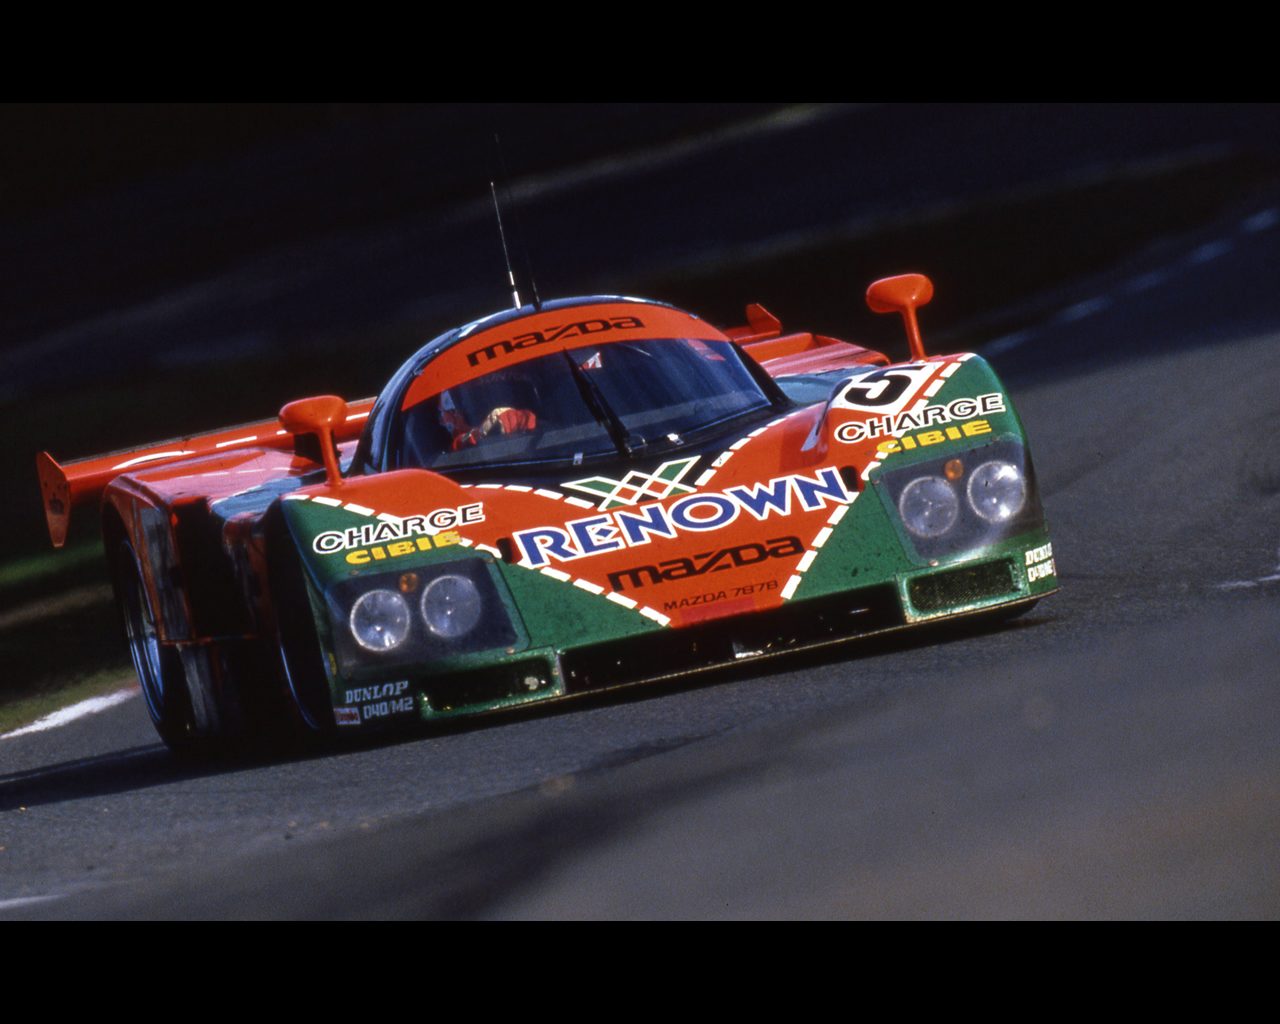 mazda 787b 1991 le mans winner with rotary piston engine. Black Bedroom Furniture Sets. Home Design Ideas